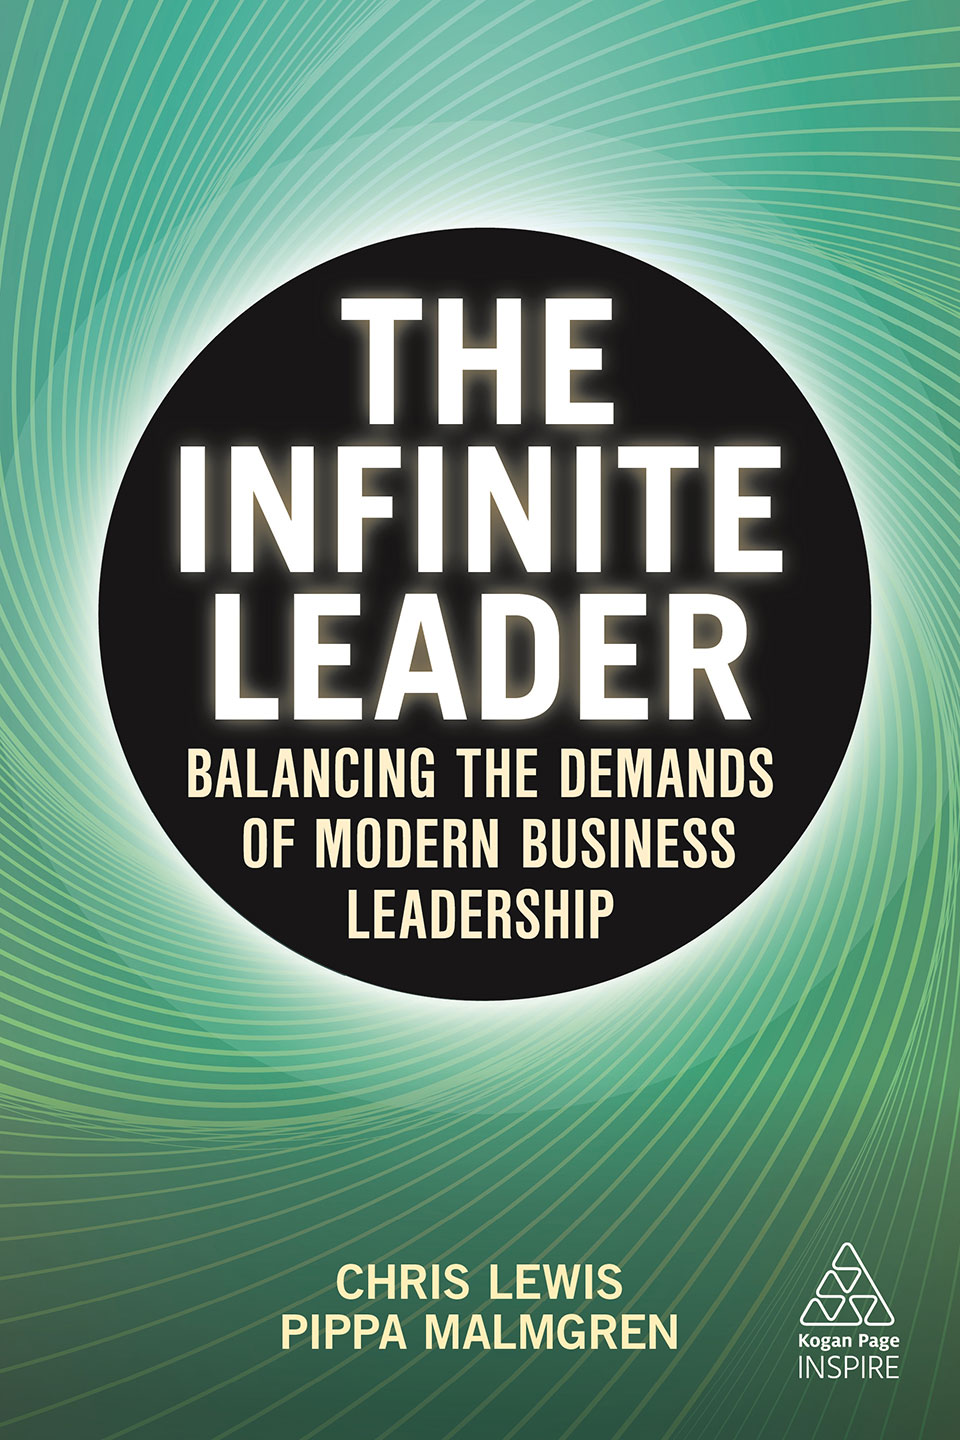 THE INFINITE LEADER: Balancing The Demands Of Modern Business Leadership